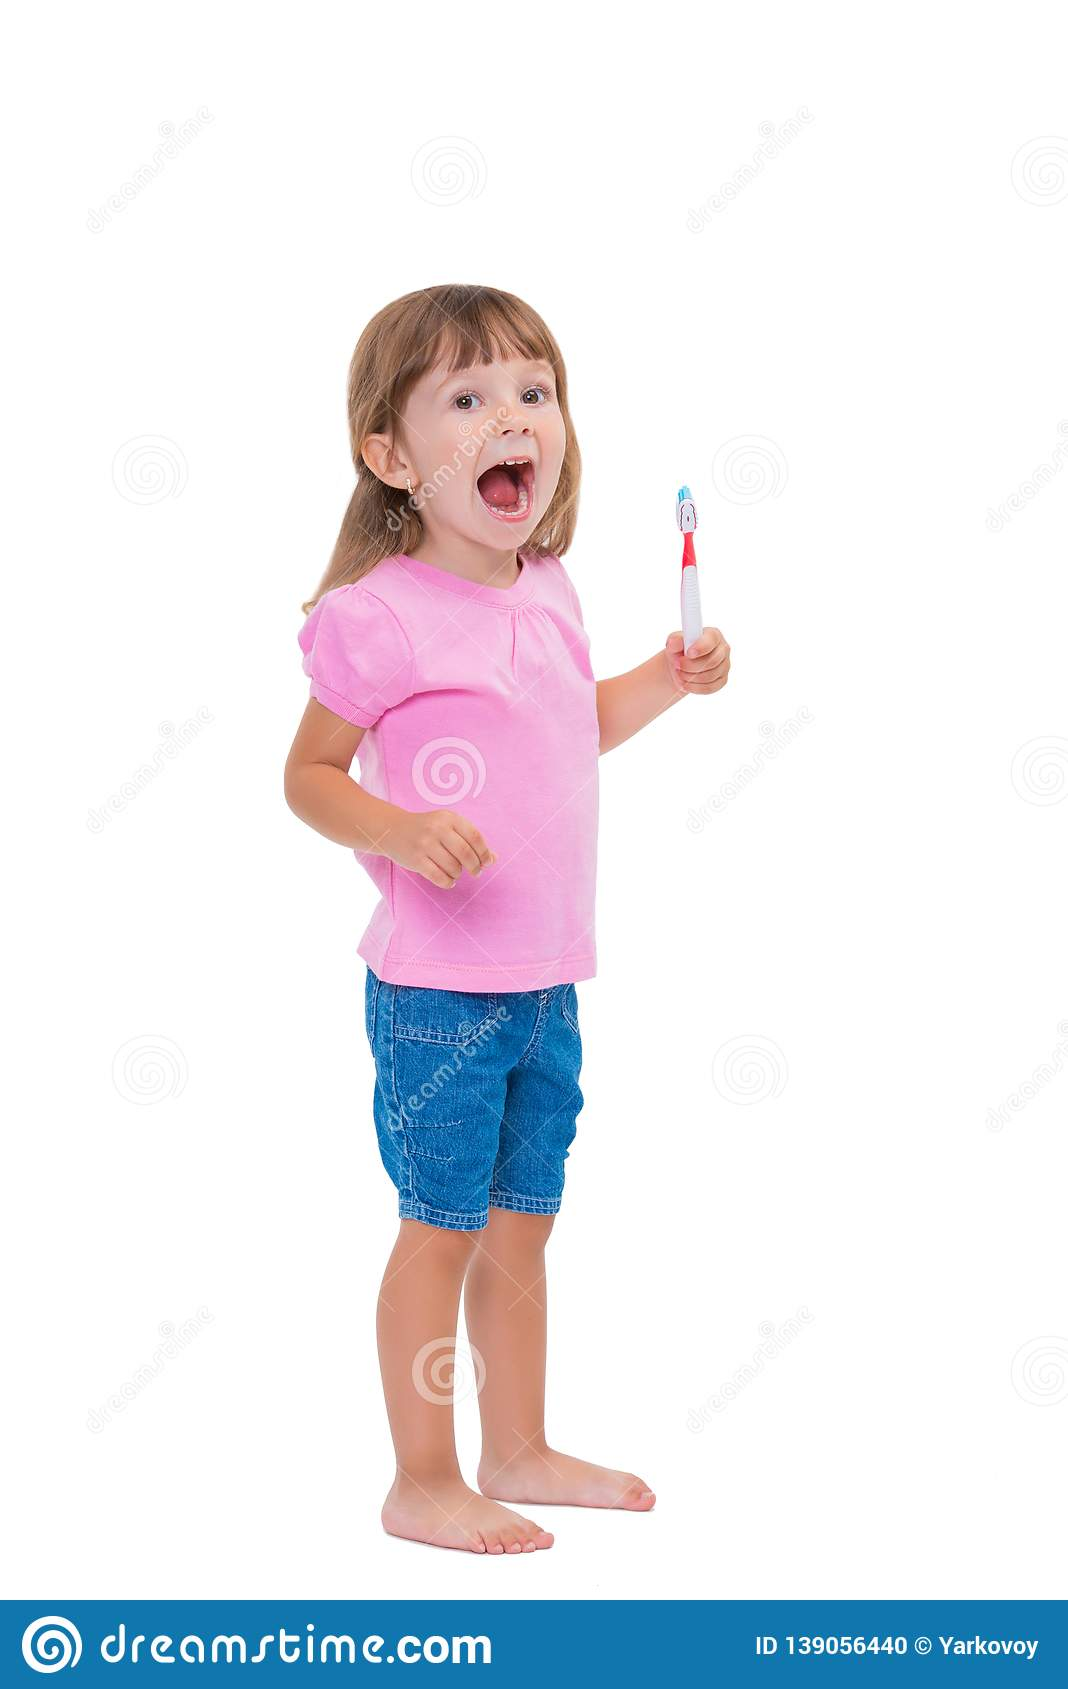 Portrait of cute little girl 3 year old in pink t-shirt brushing her teeth isolated on white background